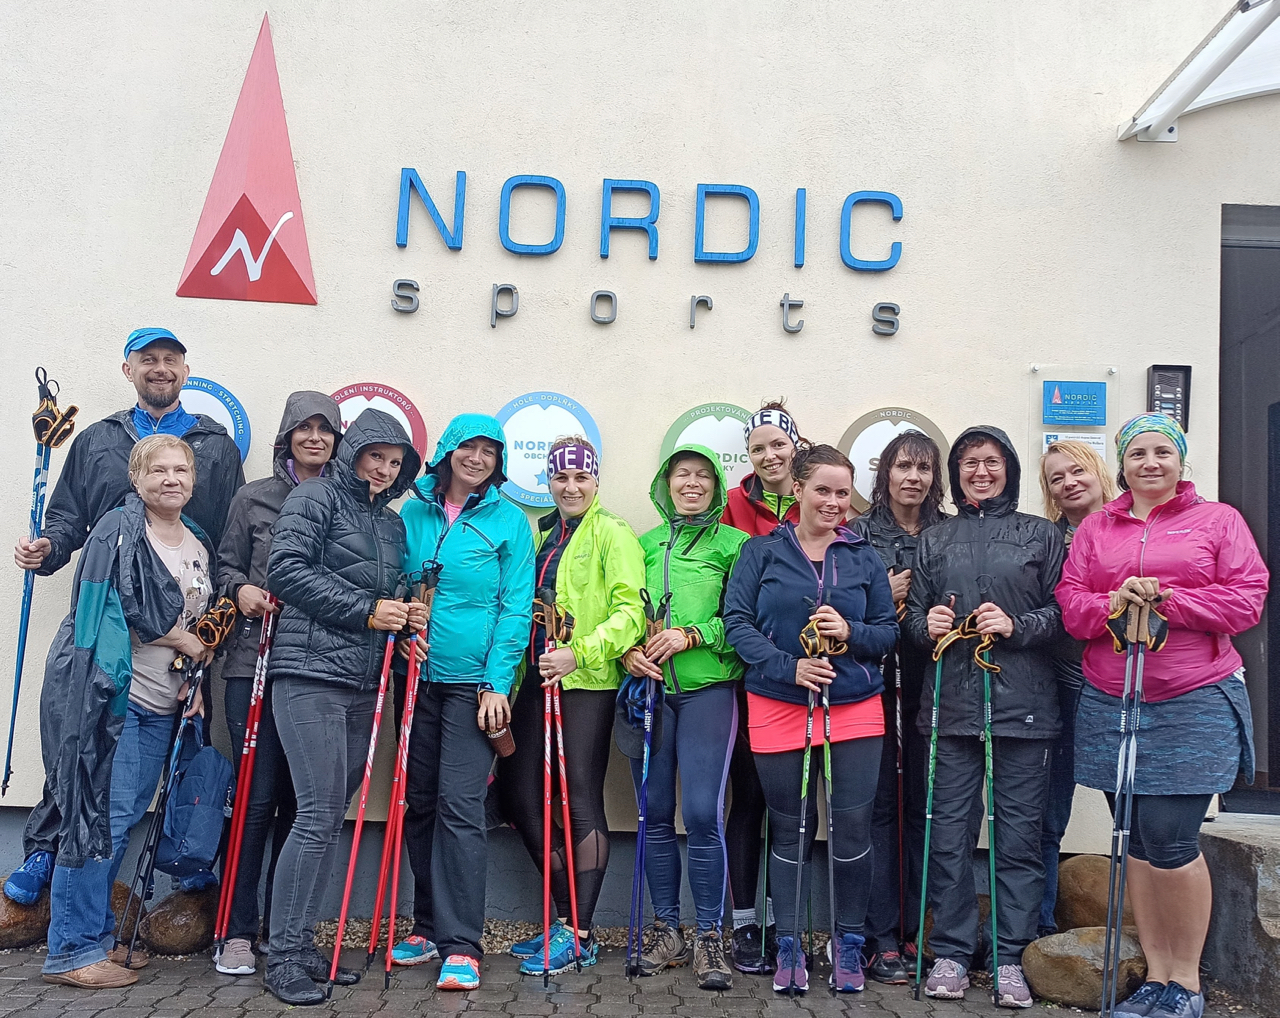 Nordic walking kurz v Brně, 11.7.2020